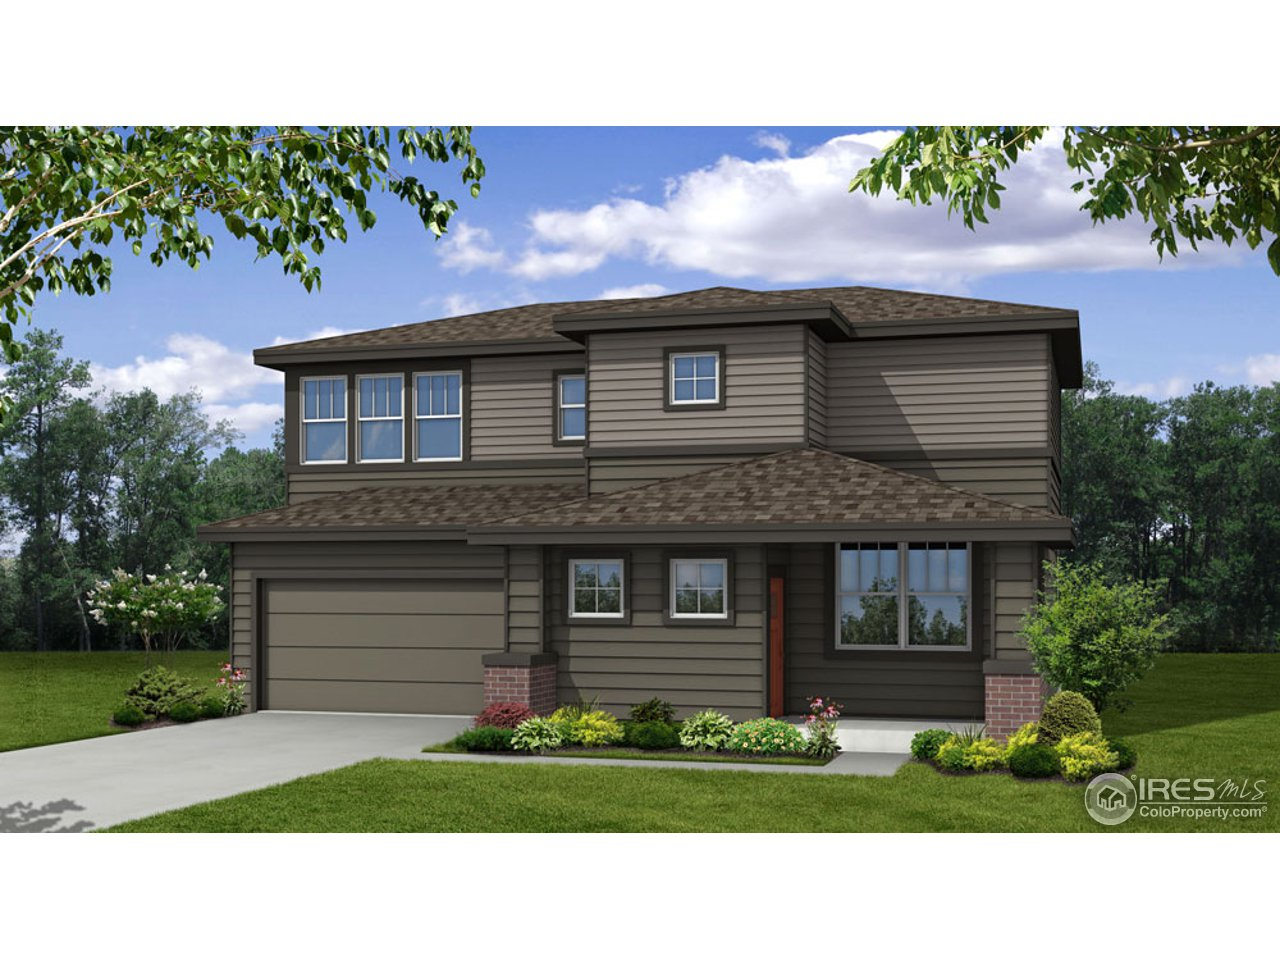 2108 Lambic St, Fort Collins, CO 80524